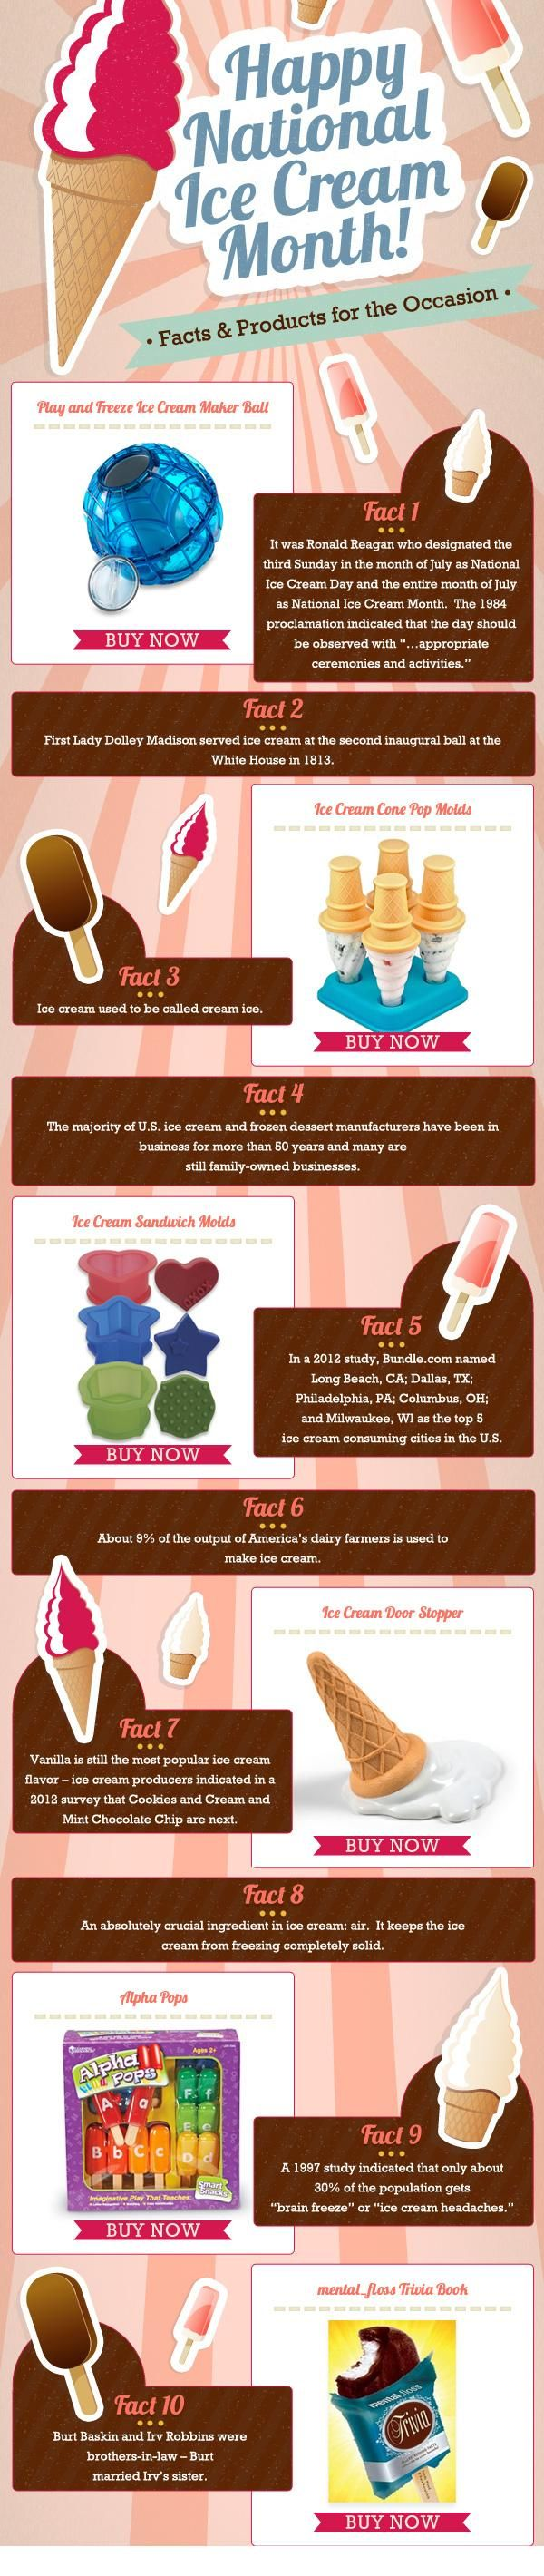 Fun Facts and Cool Products for National Ice Cream Month! | Mental Floss